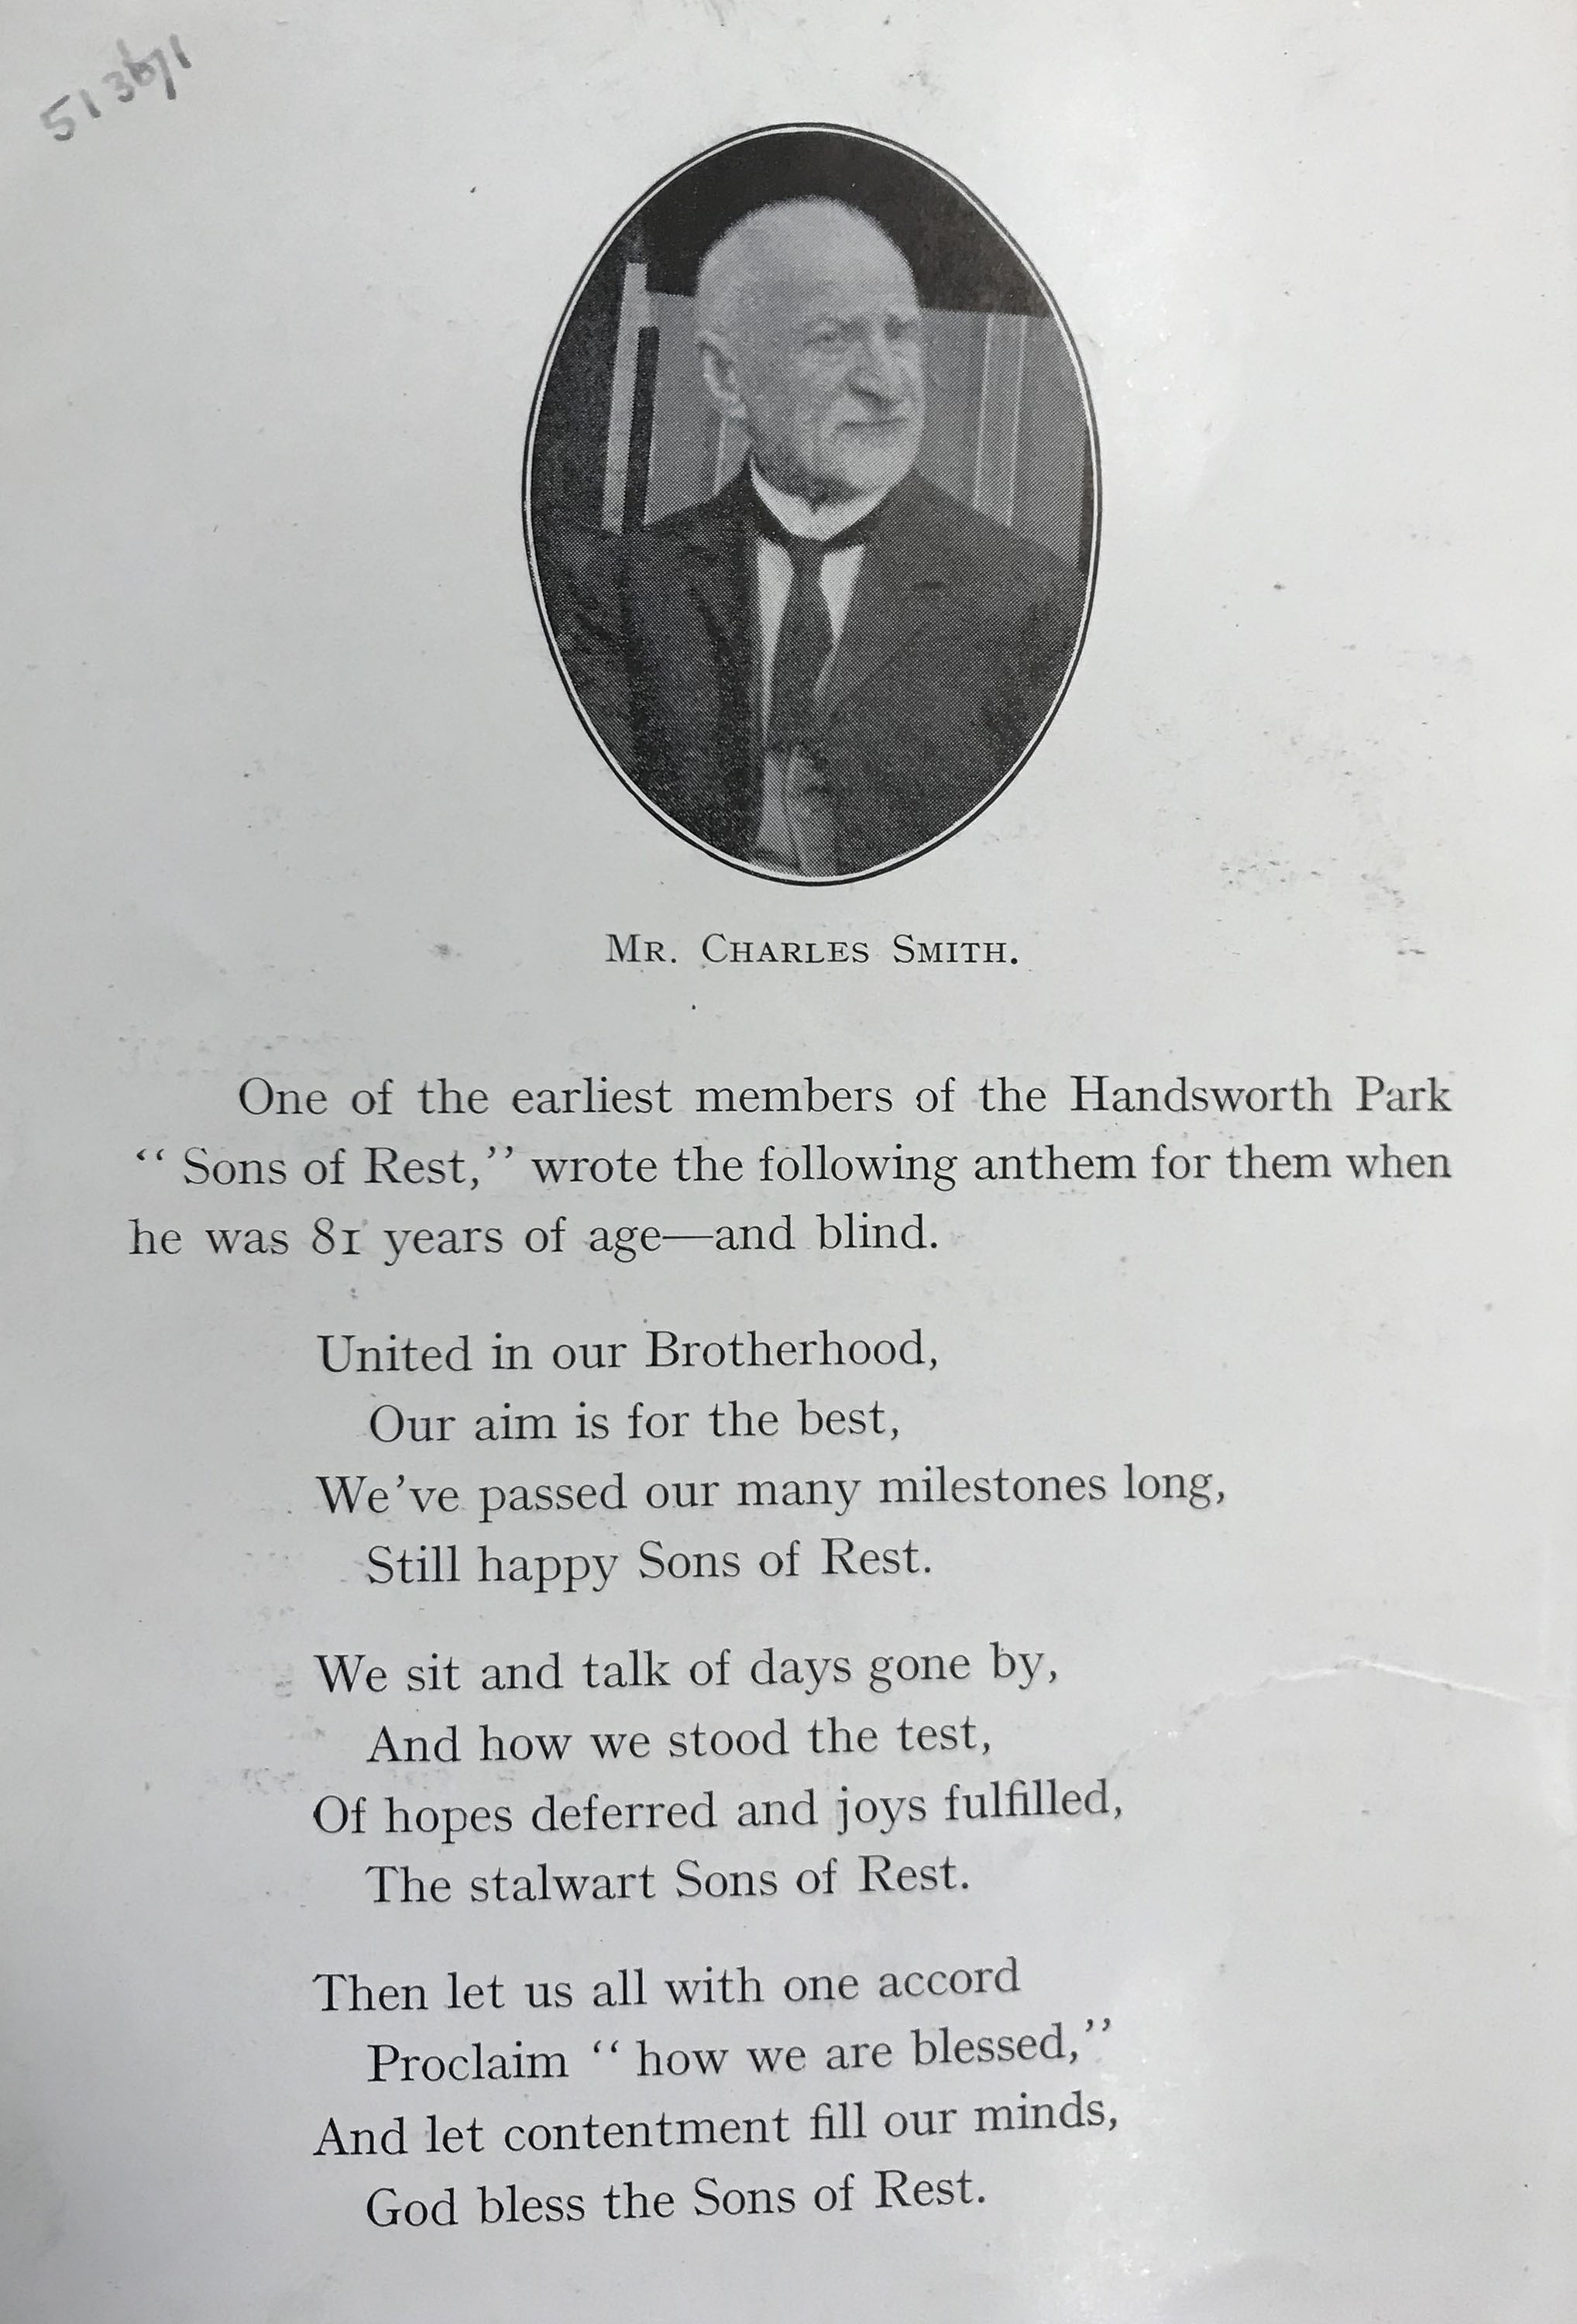 CHARLES SMITHS POEM ABOUT THE SONS OF REST